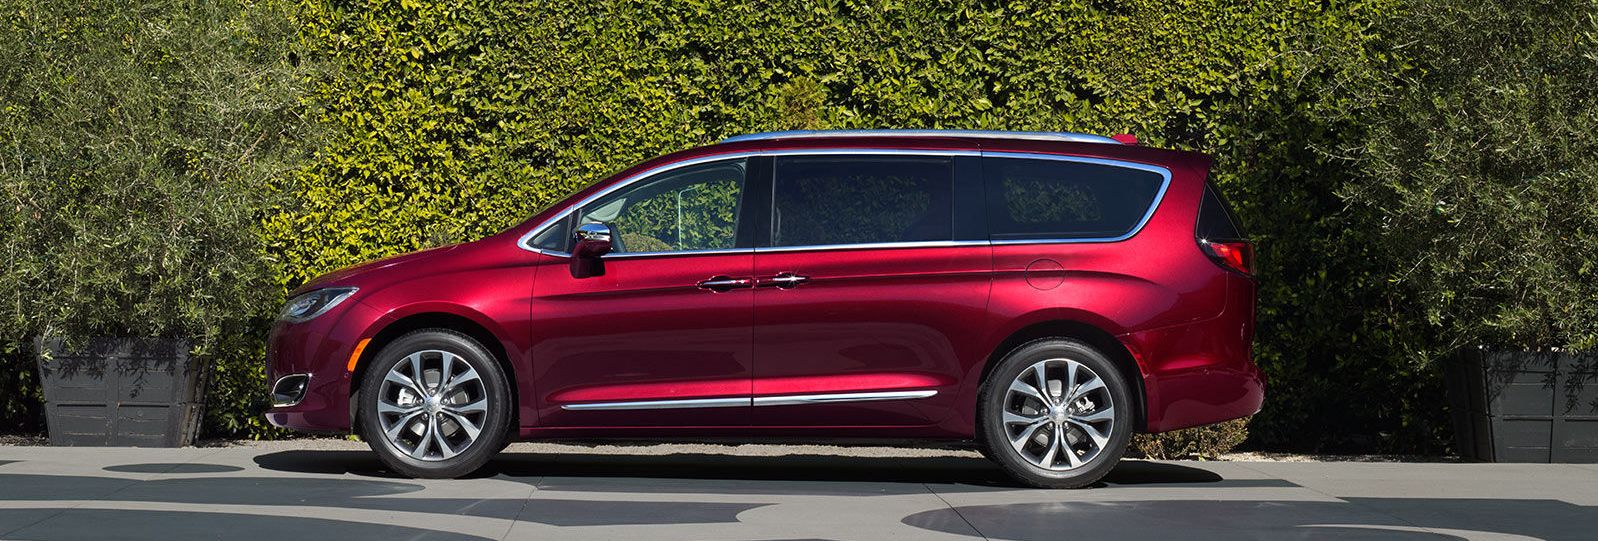 2019 Chrysler Pacifica for Sale near Oklahoma City, OK